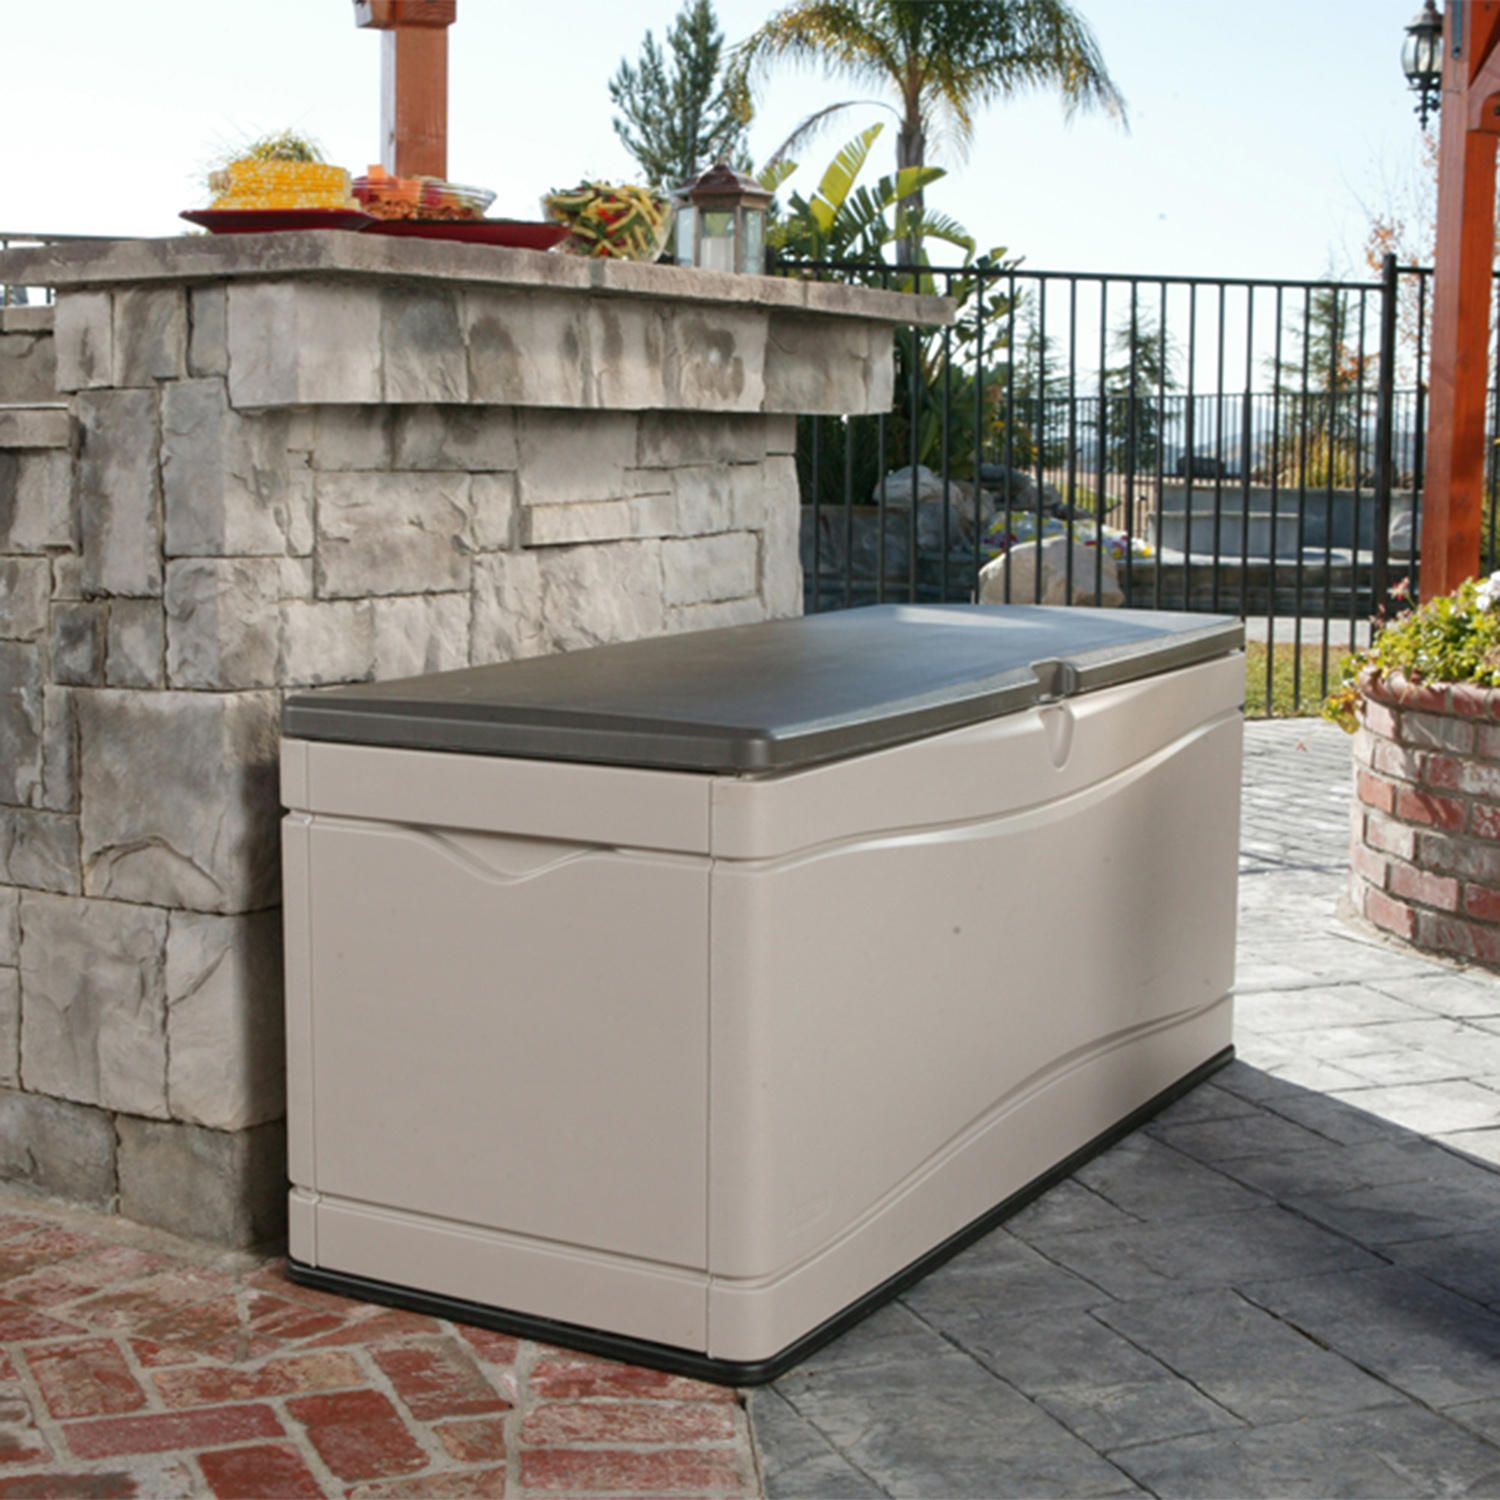 keter 60 gallon all weather outdoor